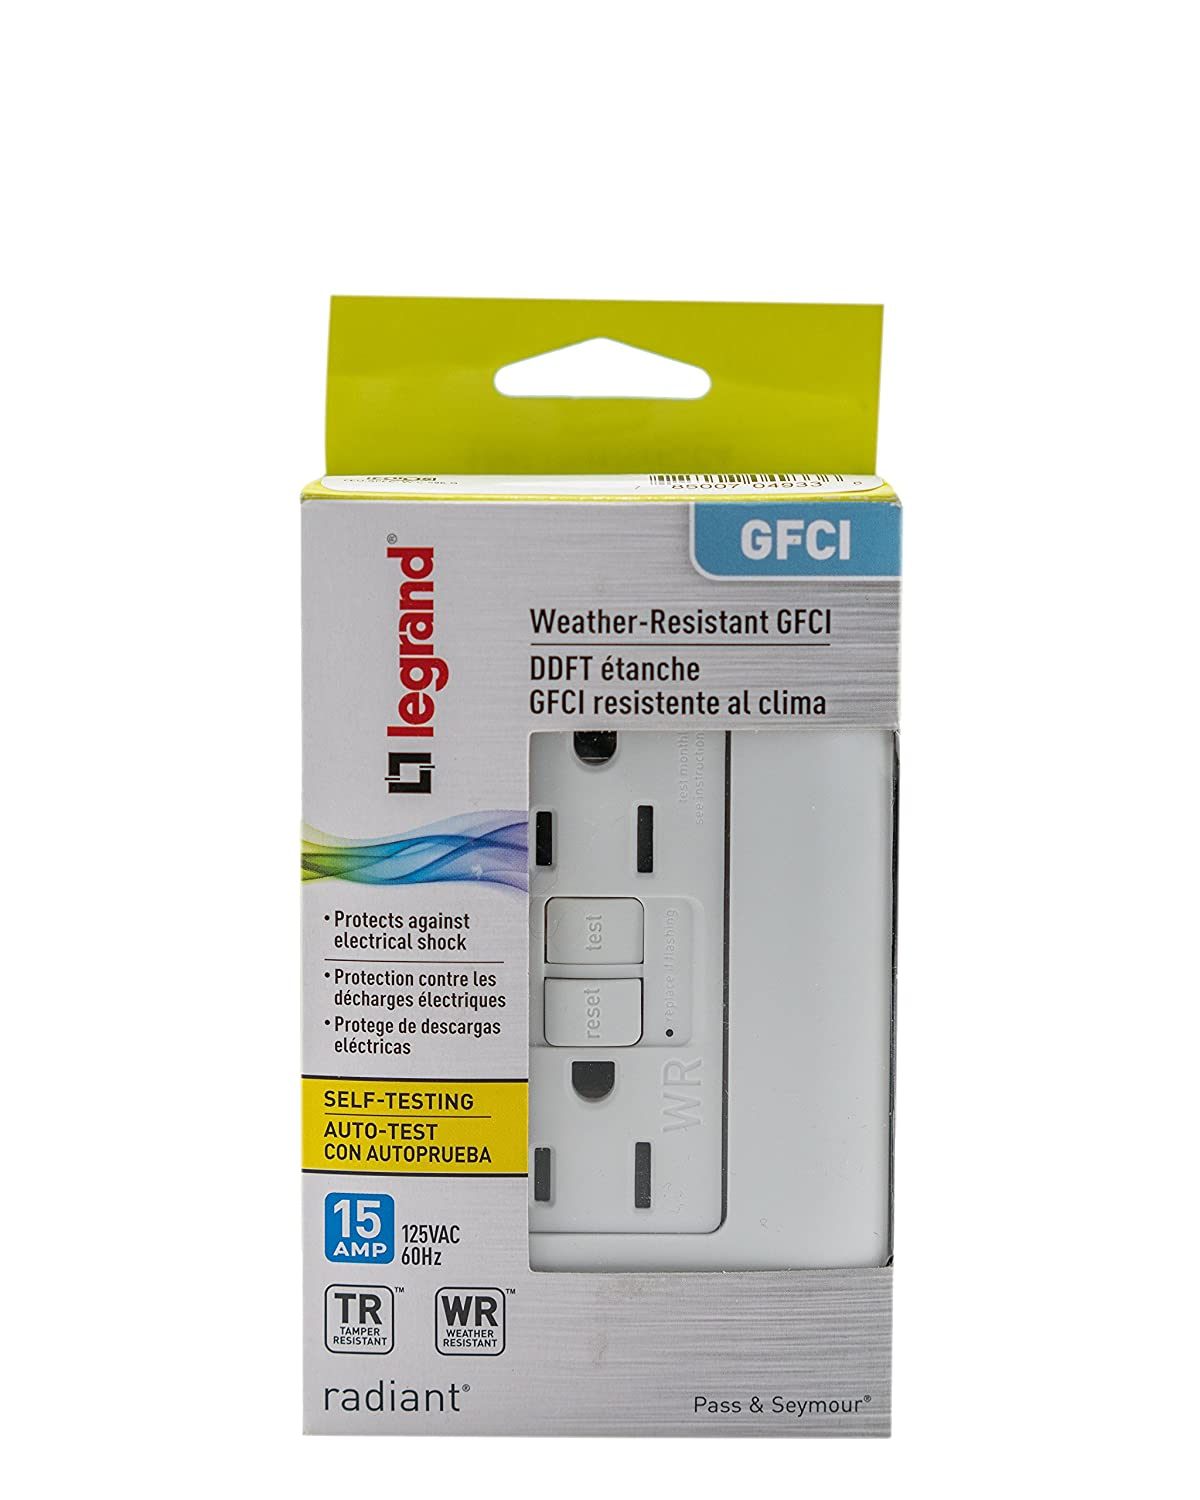 Legrand Pass Seymour 1597trwrwcc4 Self Test Gfci Receptacle Outlet 15 Or 20 Amp Tamper Weather Resistant Receptacles With Wall Plate 15amp 125v White